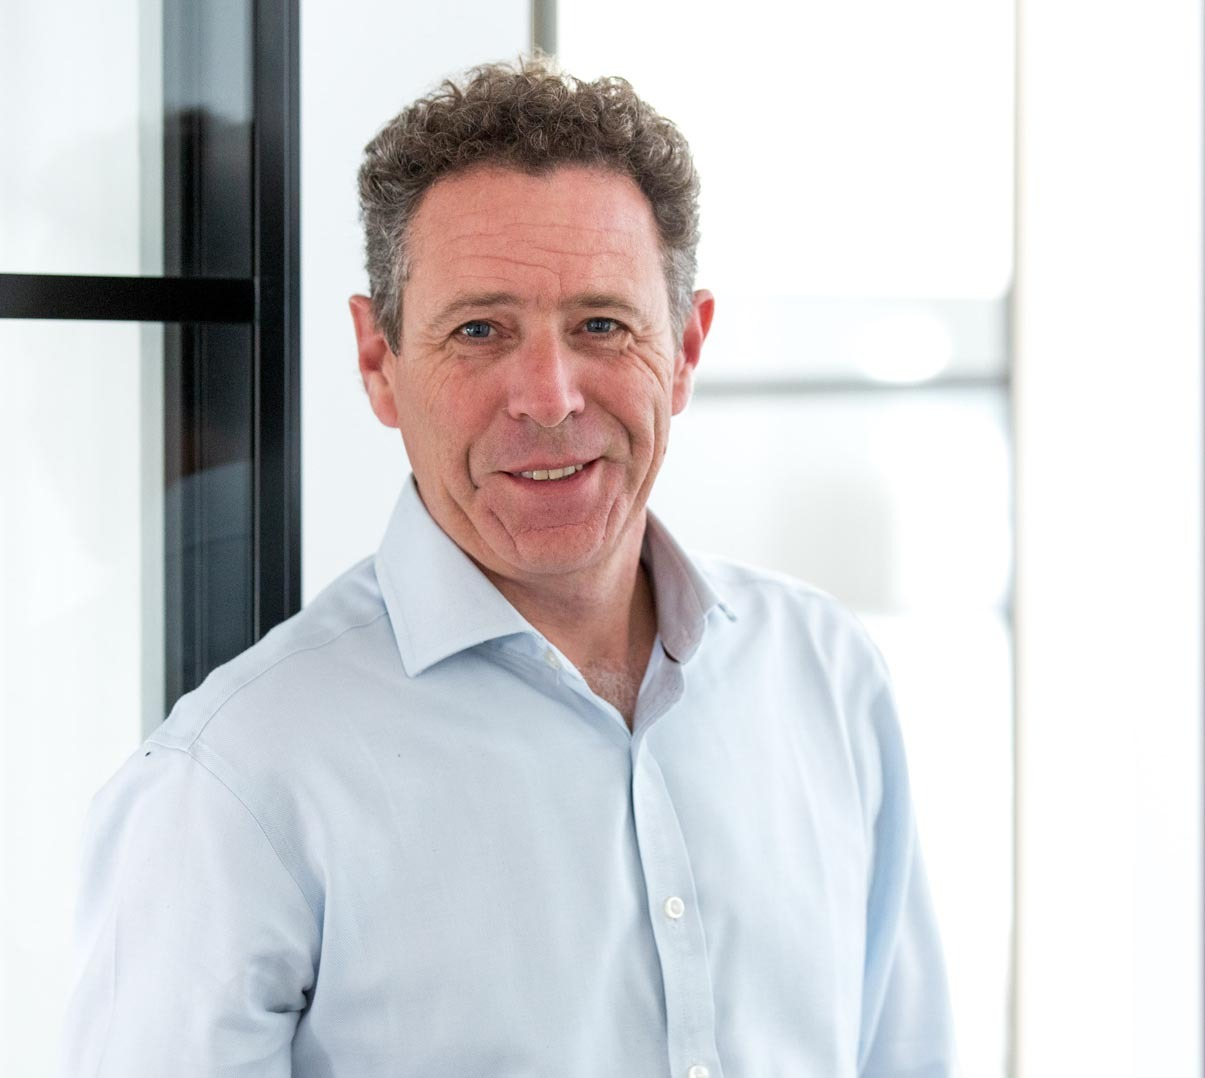 James Hardy, Partner at Acuity Law